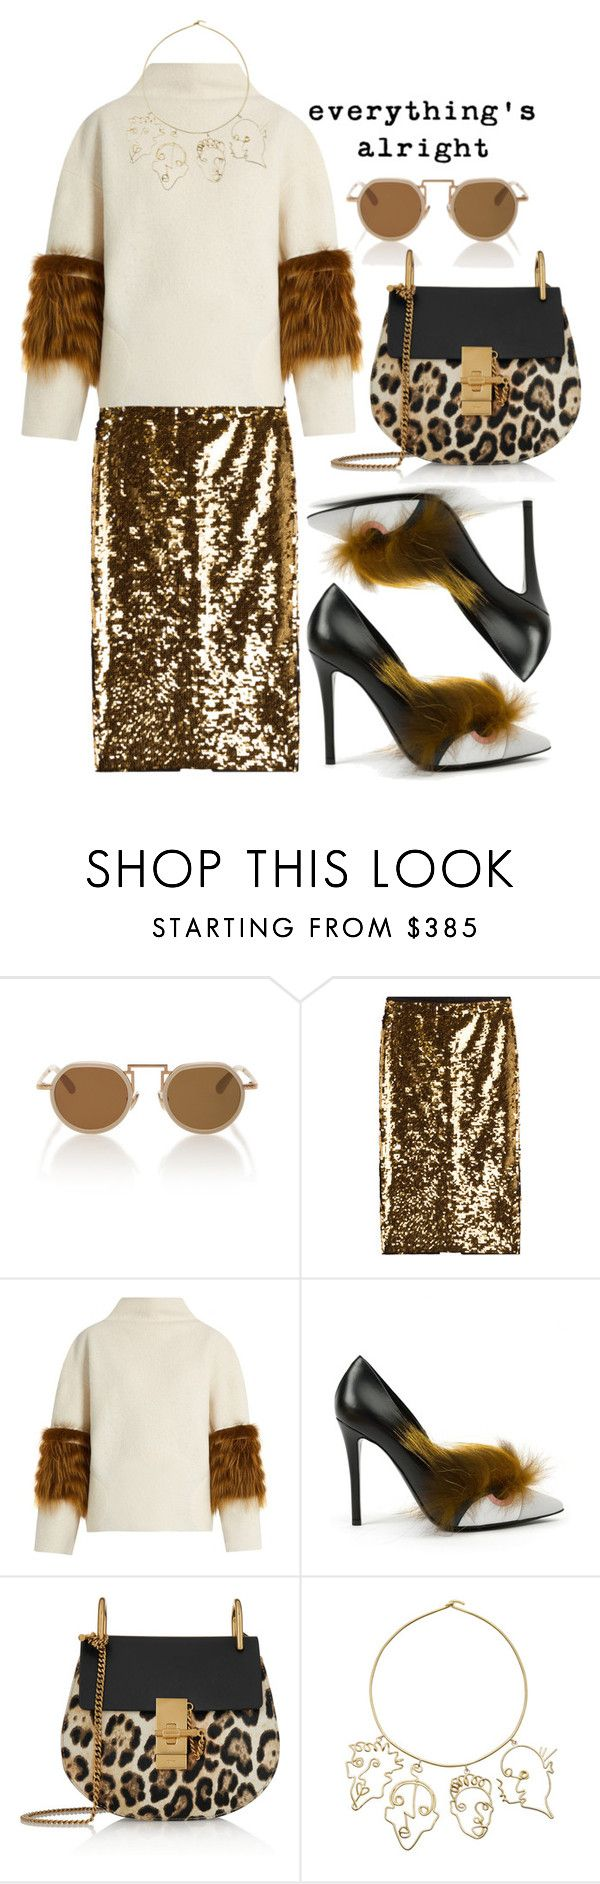 """""""Everything"""" by cherieaustin ❤ liked on Polyvore featuring Mes Demoiselles..., Saks Potts, Fendi and Chloé"""